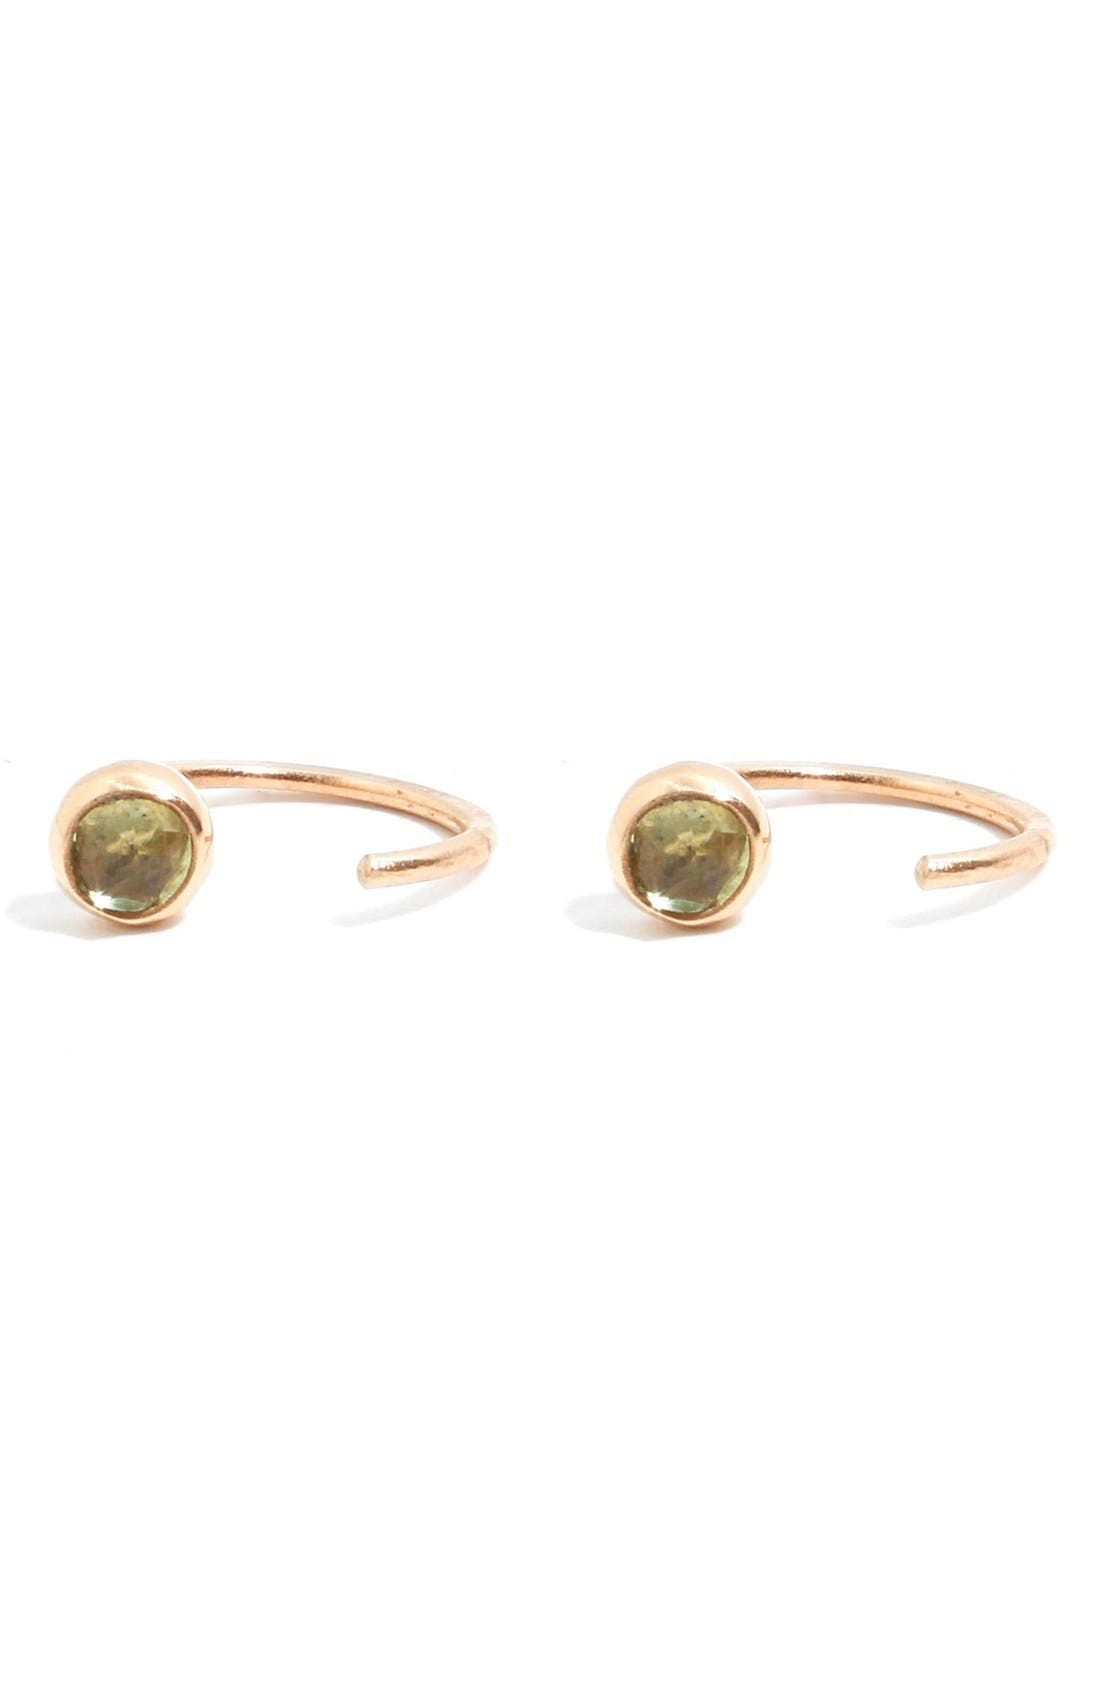 Main Image - Melissa Joy Manning Peridot Hug Hoop Earrings